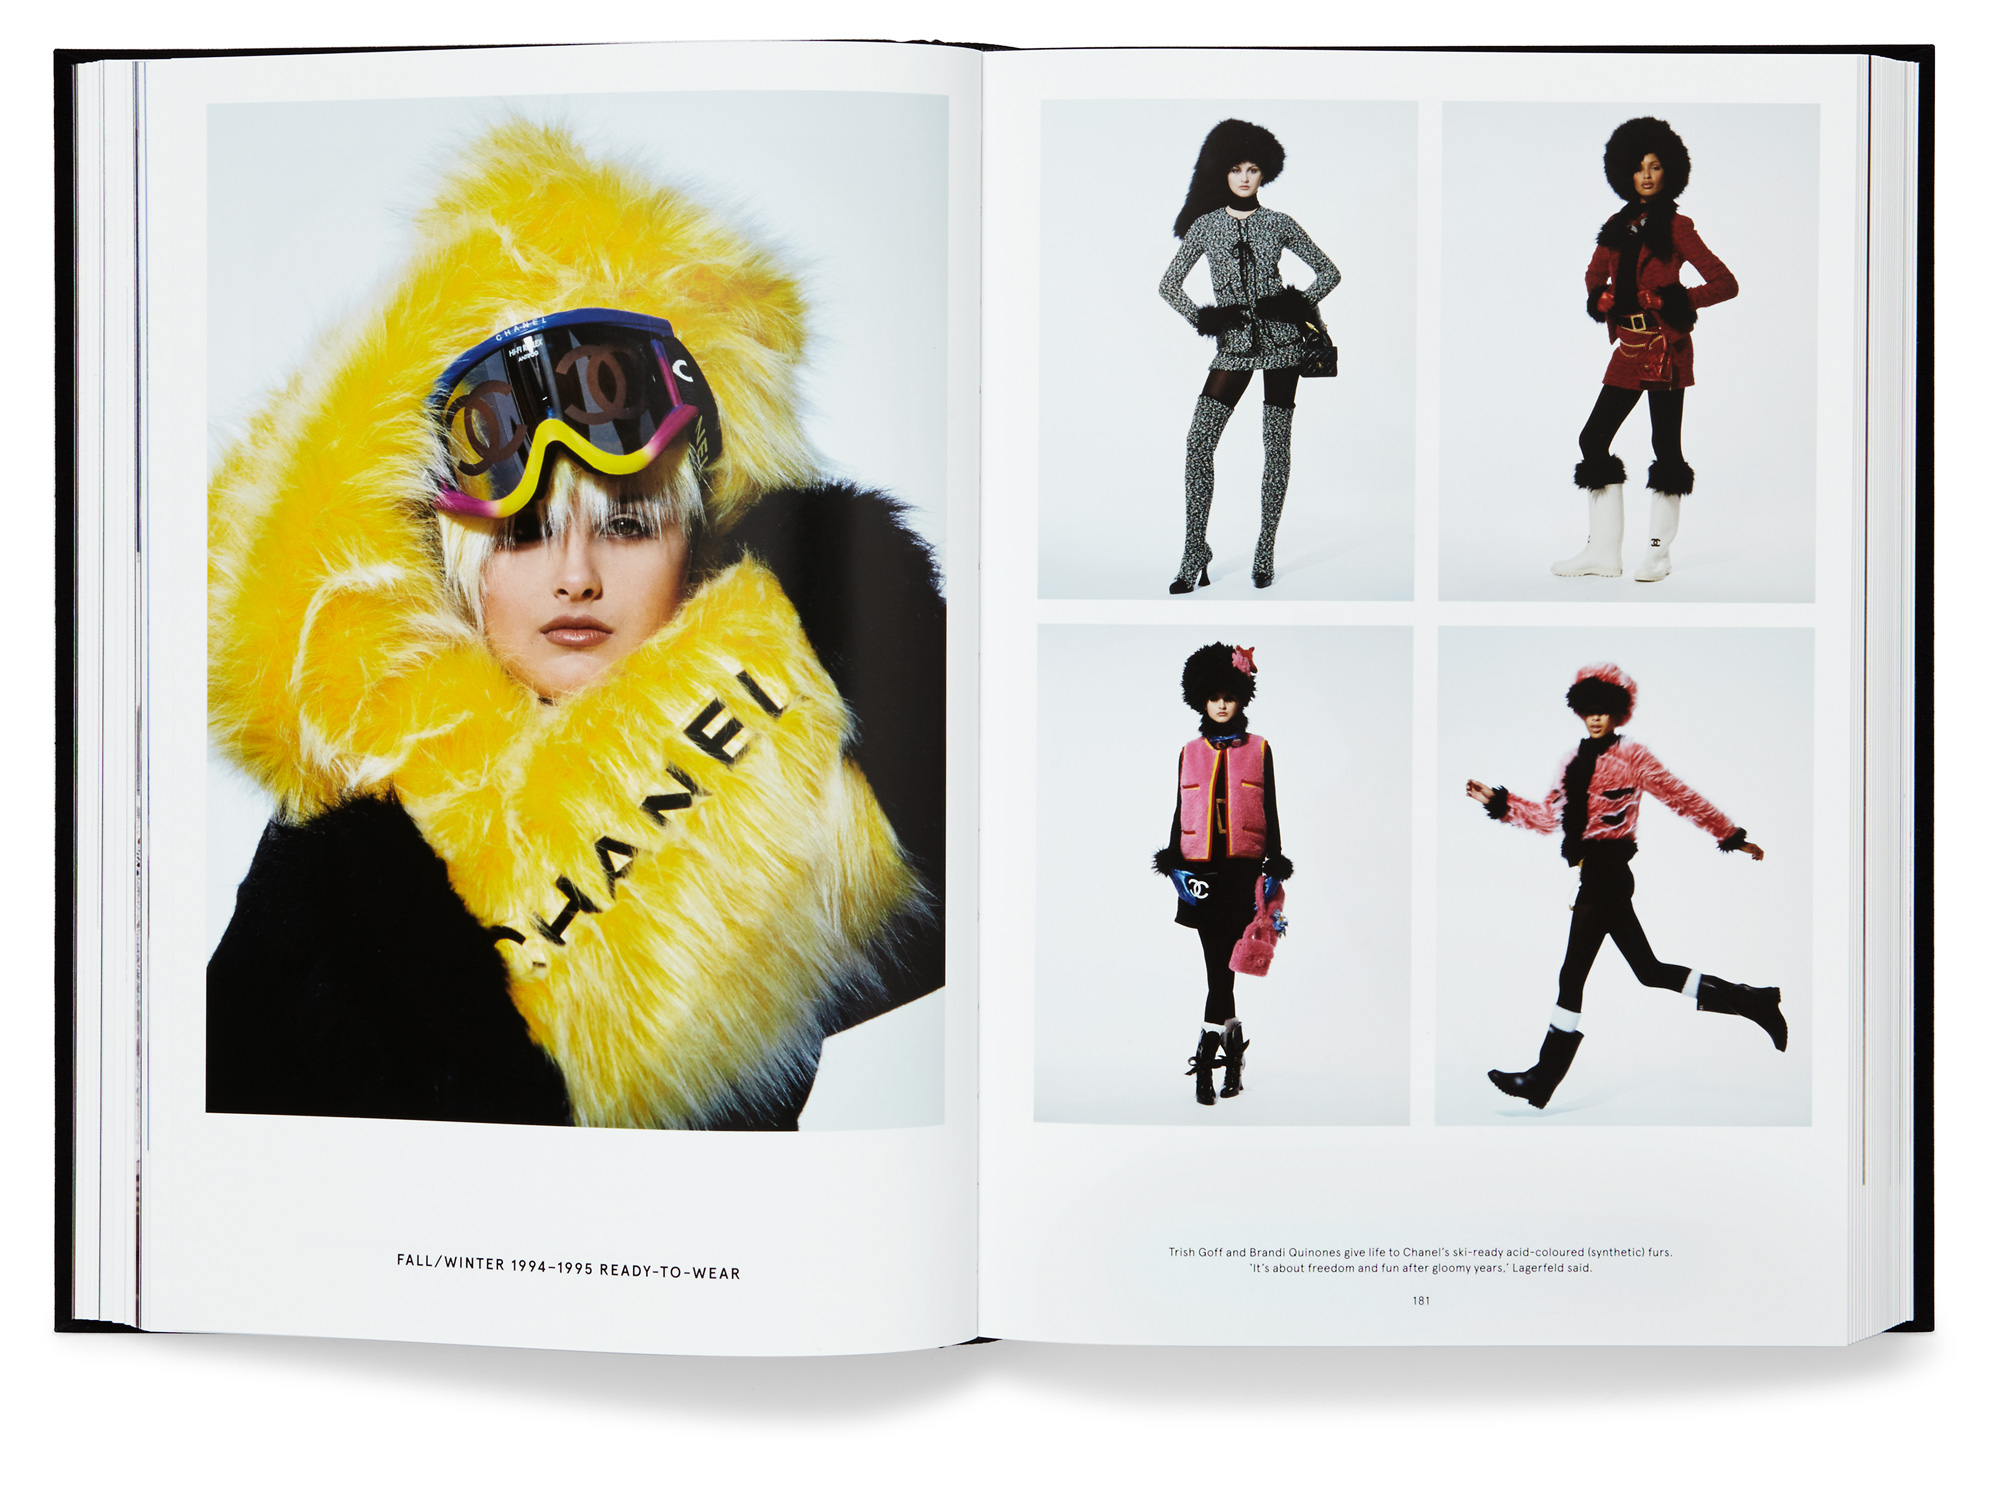 Daniel Baer – Chanel&nbsp;&ndash; The Lagerfeld Campaigns. <i>Chanel</i> 5